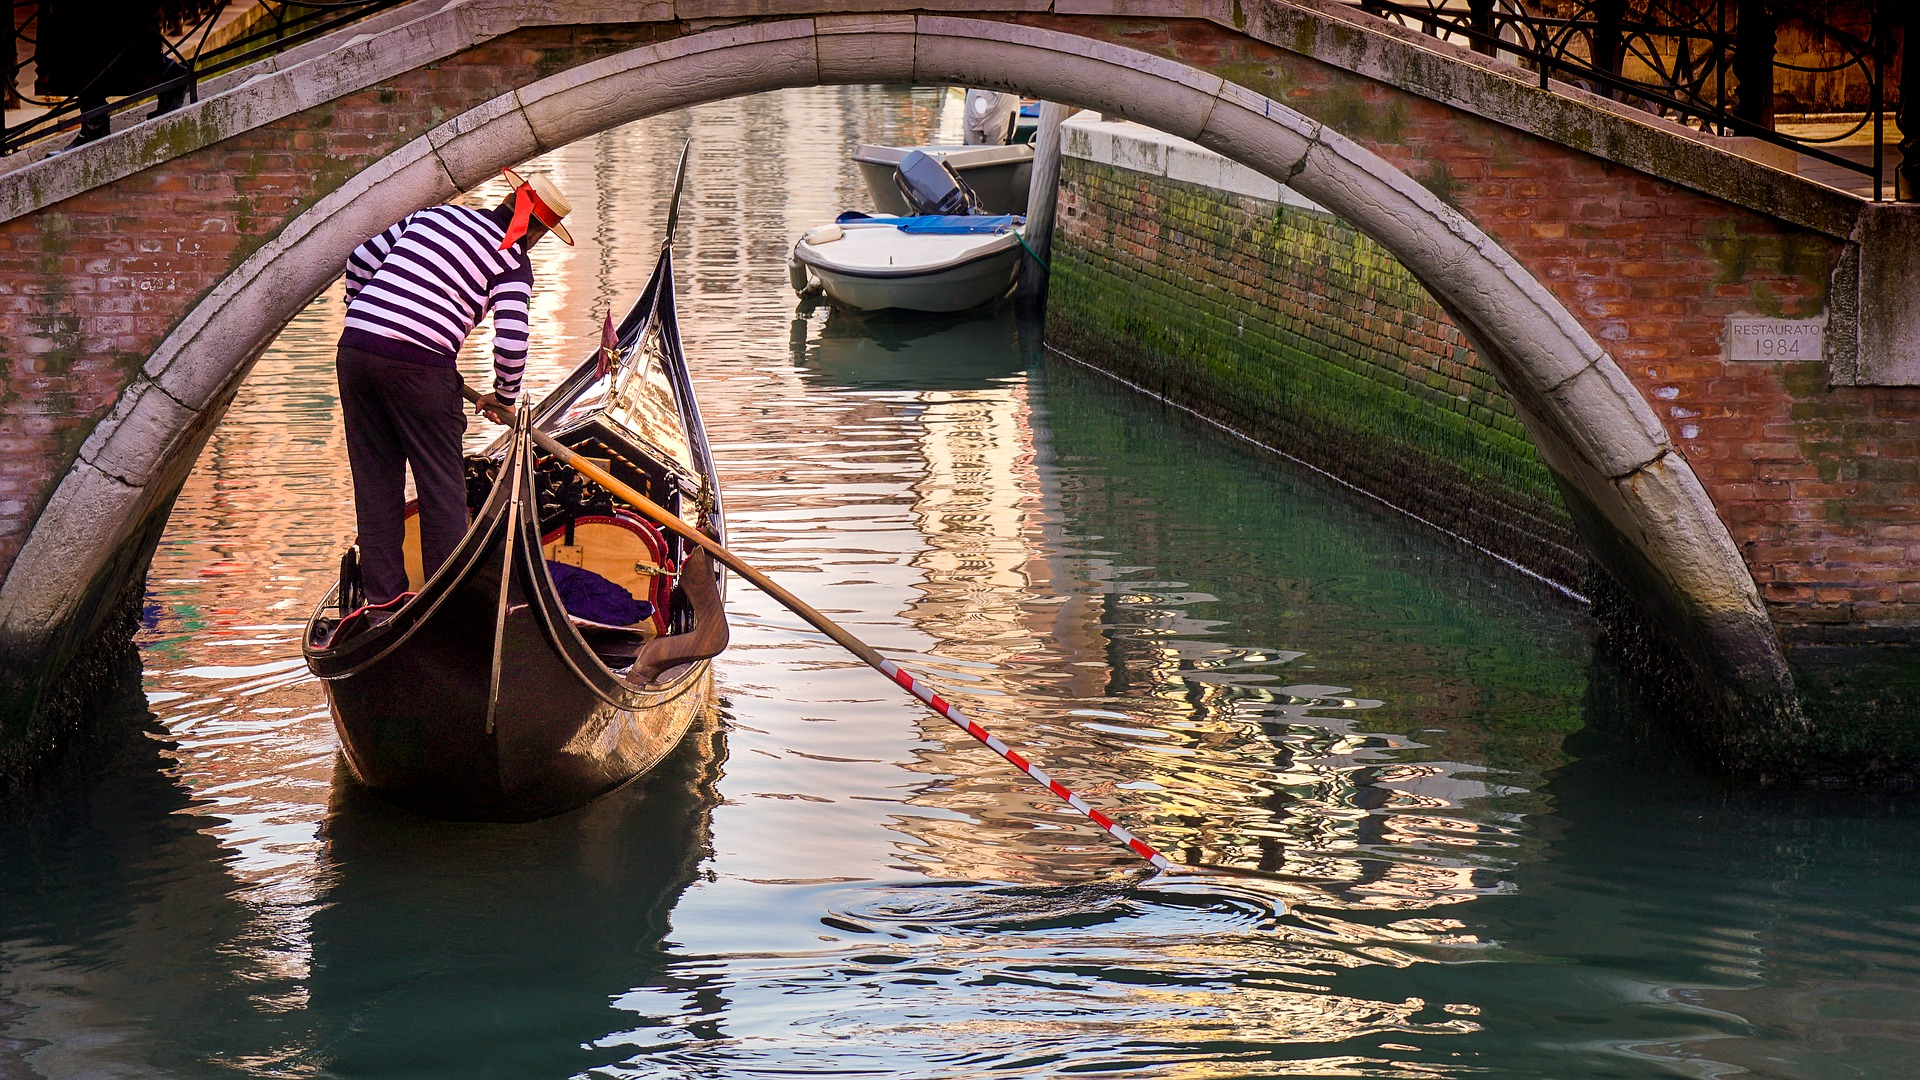 Goncolier in Venice, Italy